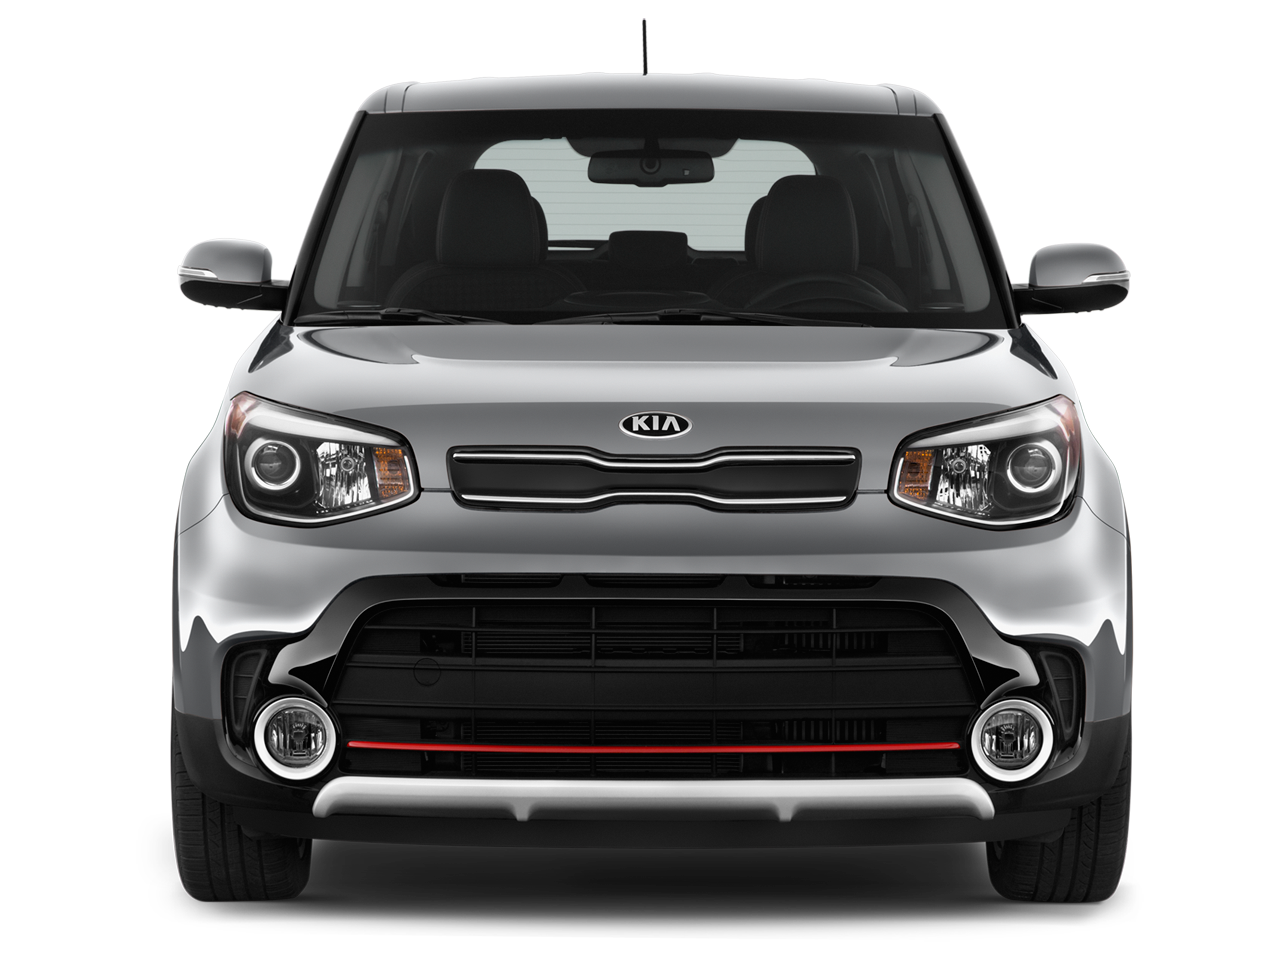 motor with extra review en kia center now soul sole turbo vigor stack drive news first